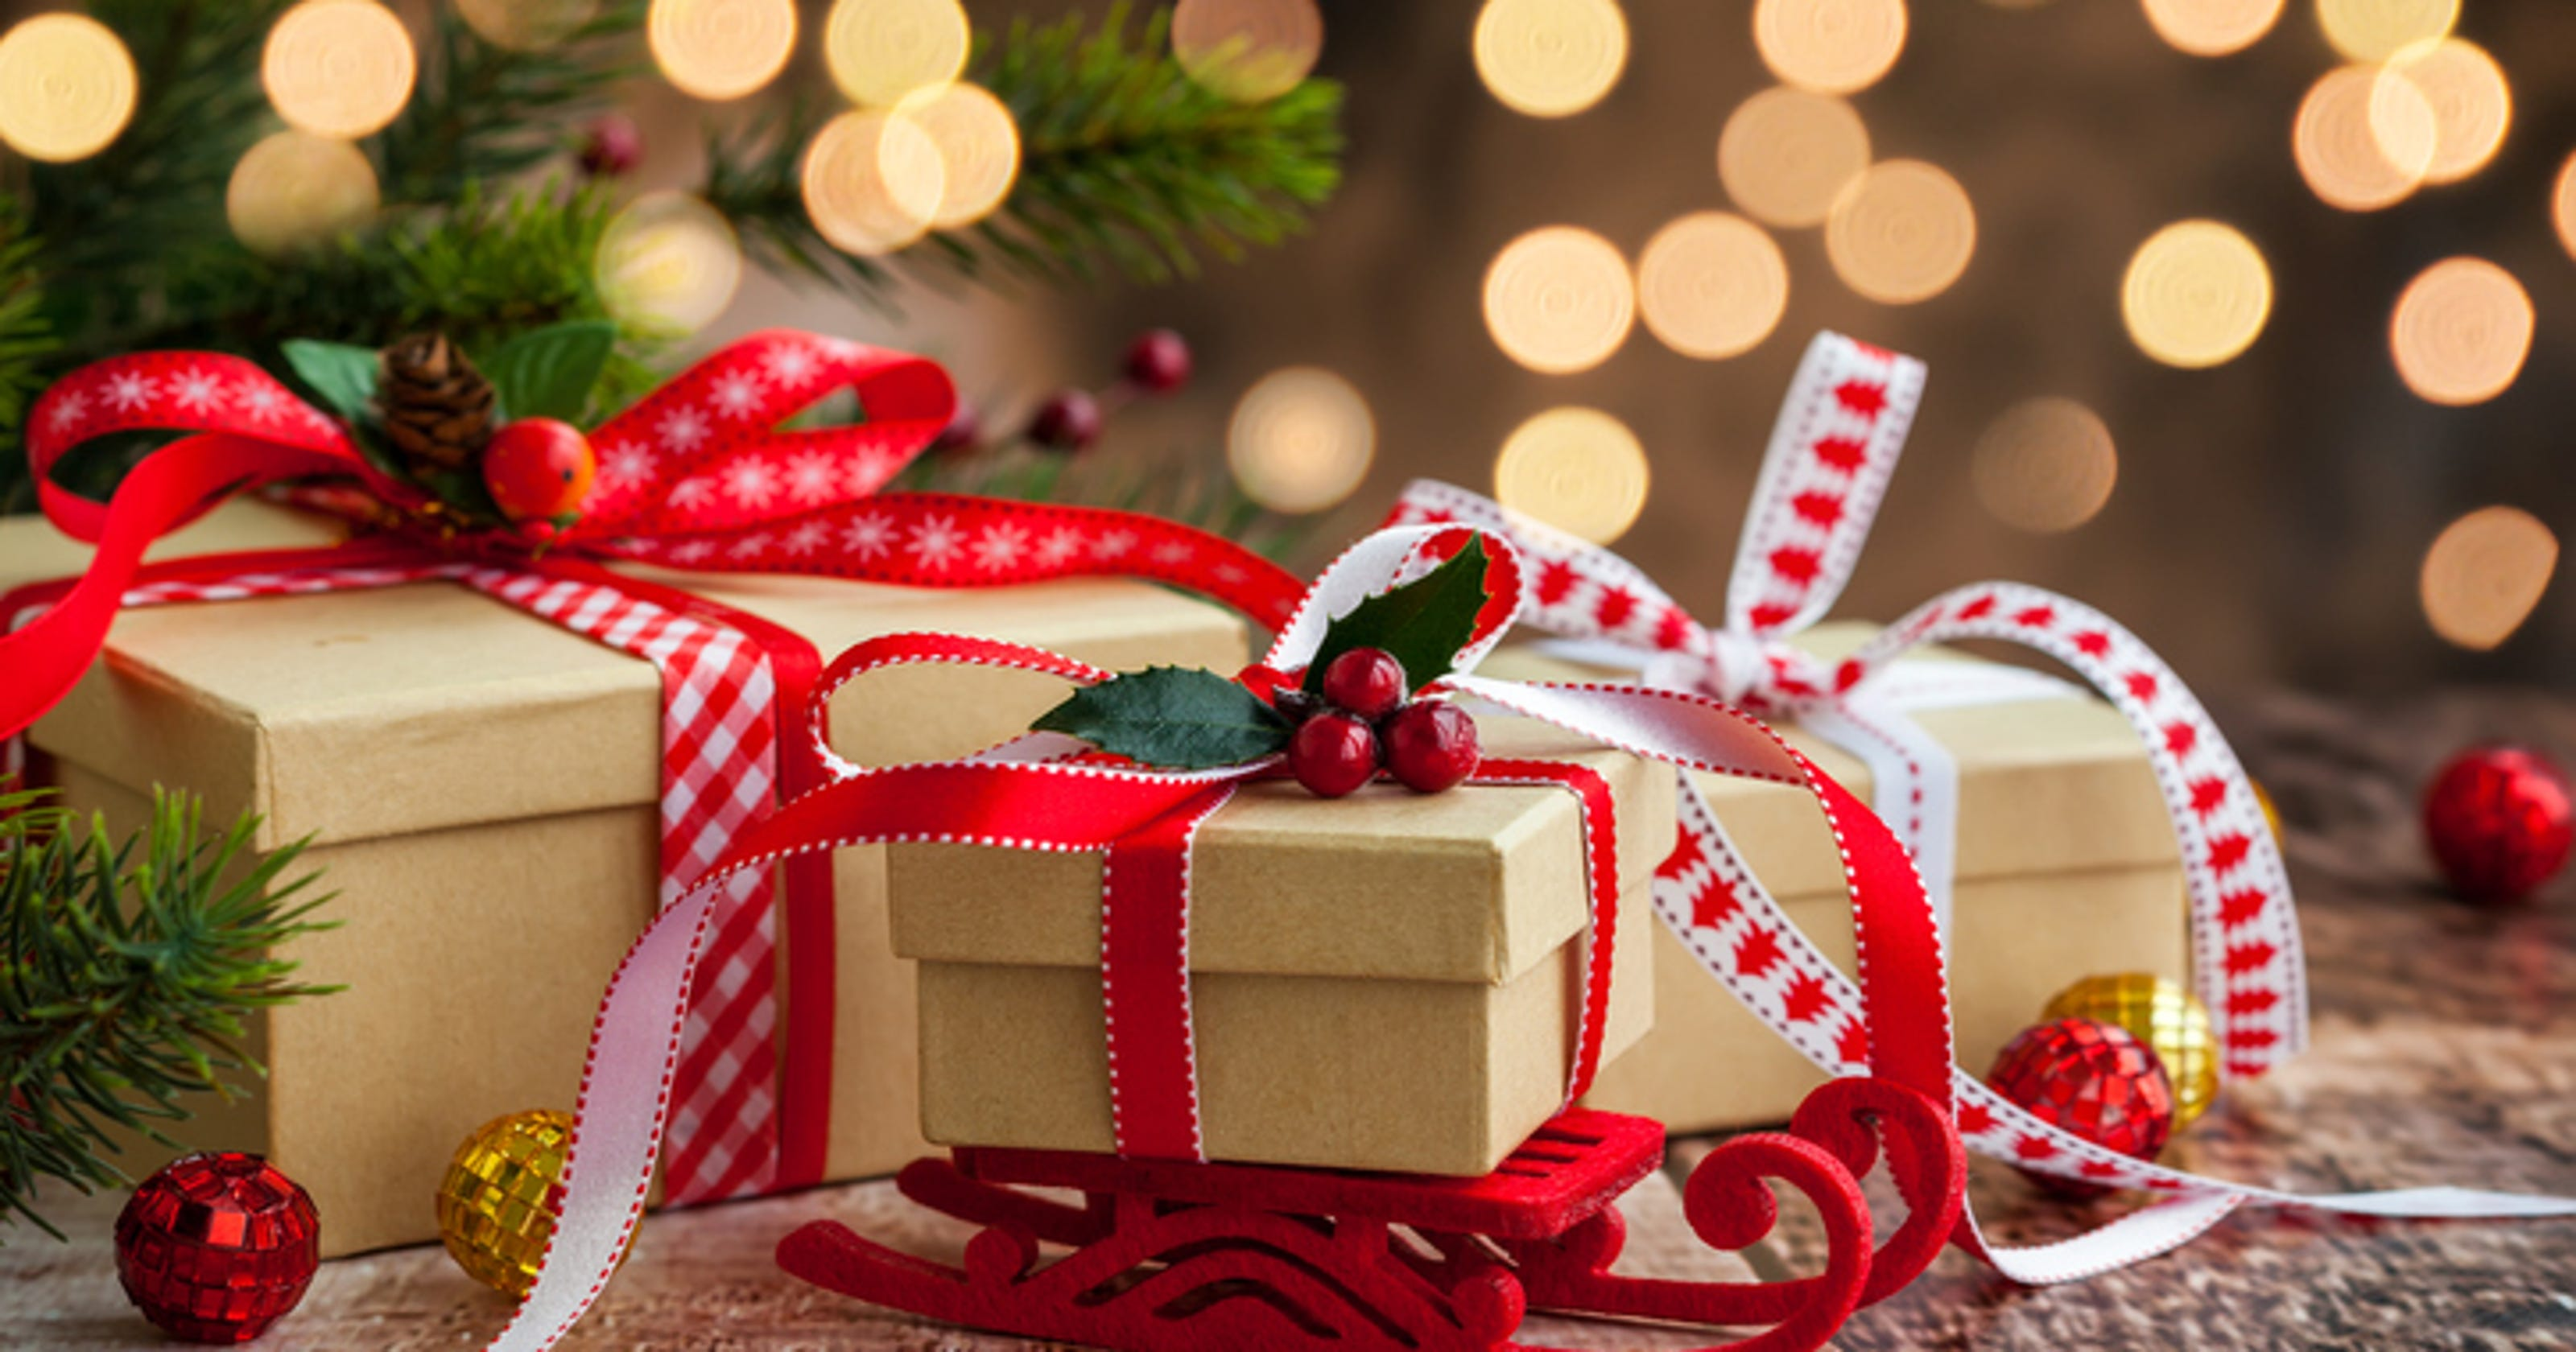 How To Recycle Holiday Waste, From Wrapping Paper To